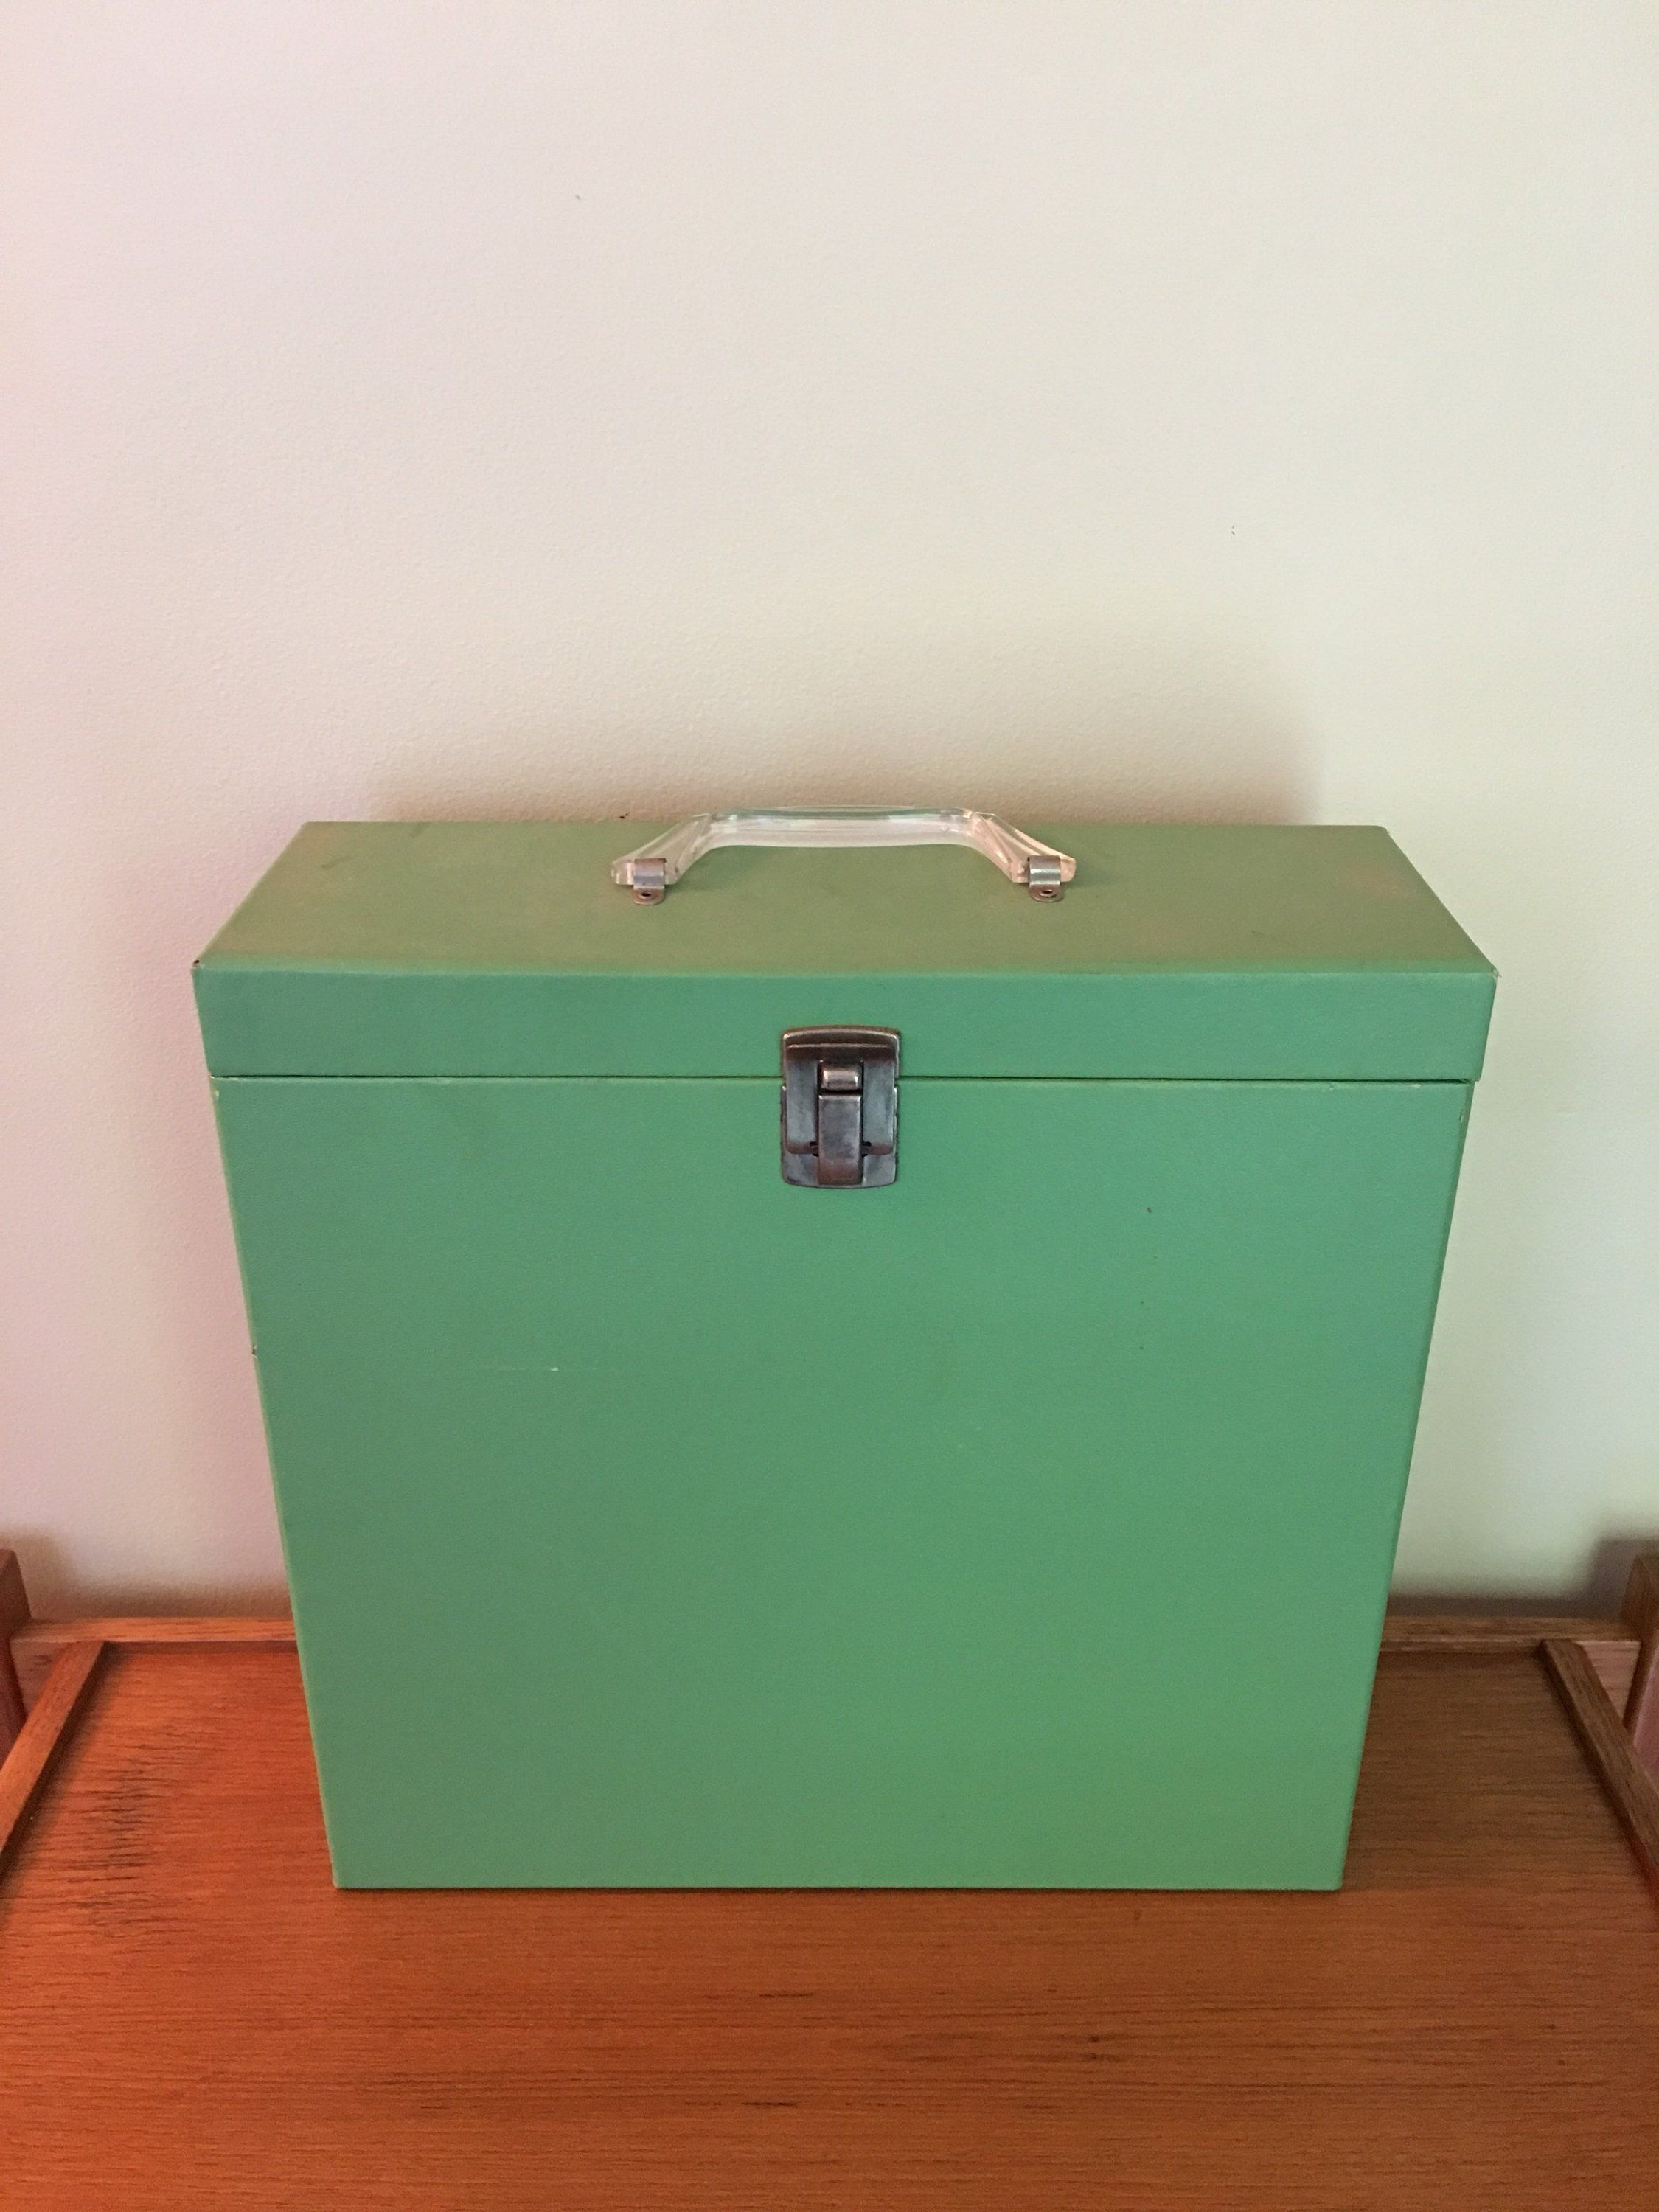 Vintage Record Storage Case Green Travel Case For Lp Record Albums Album Holder Vinyl Case Record Stora Record Storage Record Storage Box Lp Record Storage